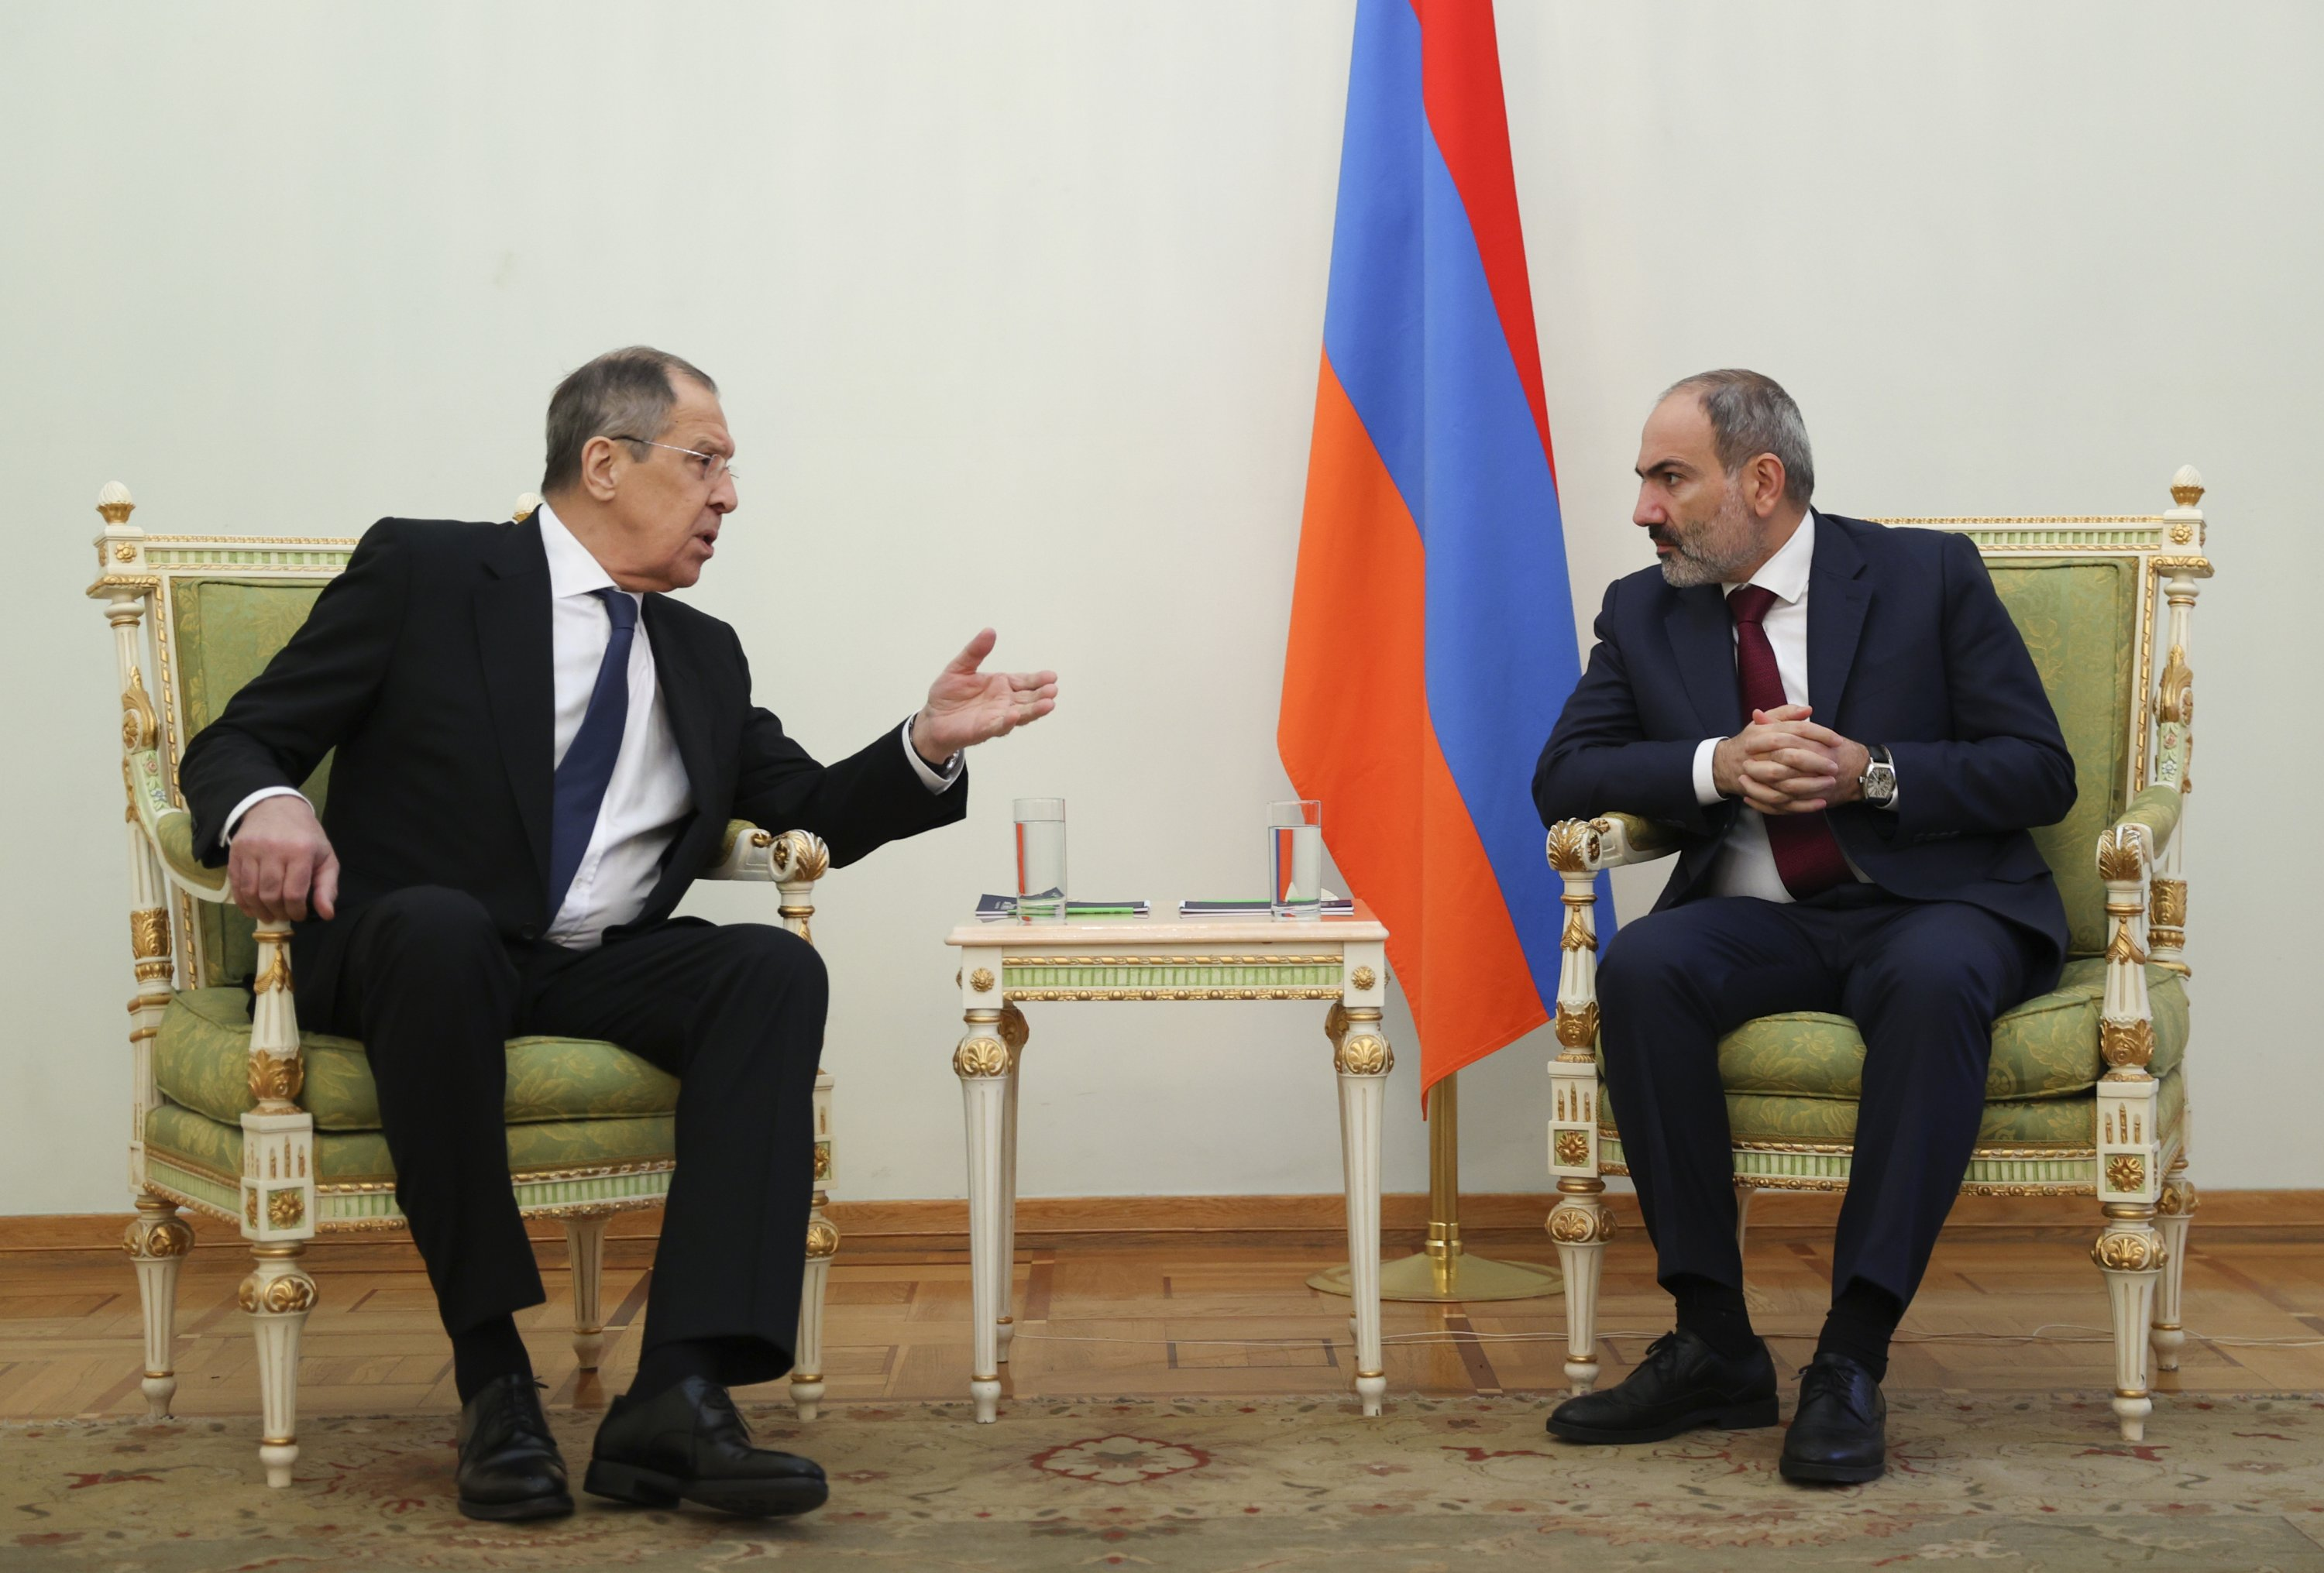 Russian Foreign Minister Sergey Lavrov (L) gestures while speaking to Armenia's Prime Minister Nikol Pashinian during their meeting in Yerevan, Armenia, Nov. 21, 2020. (AP)